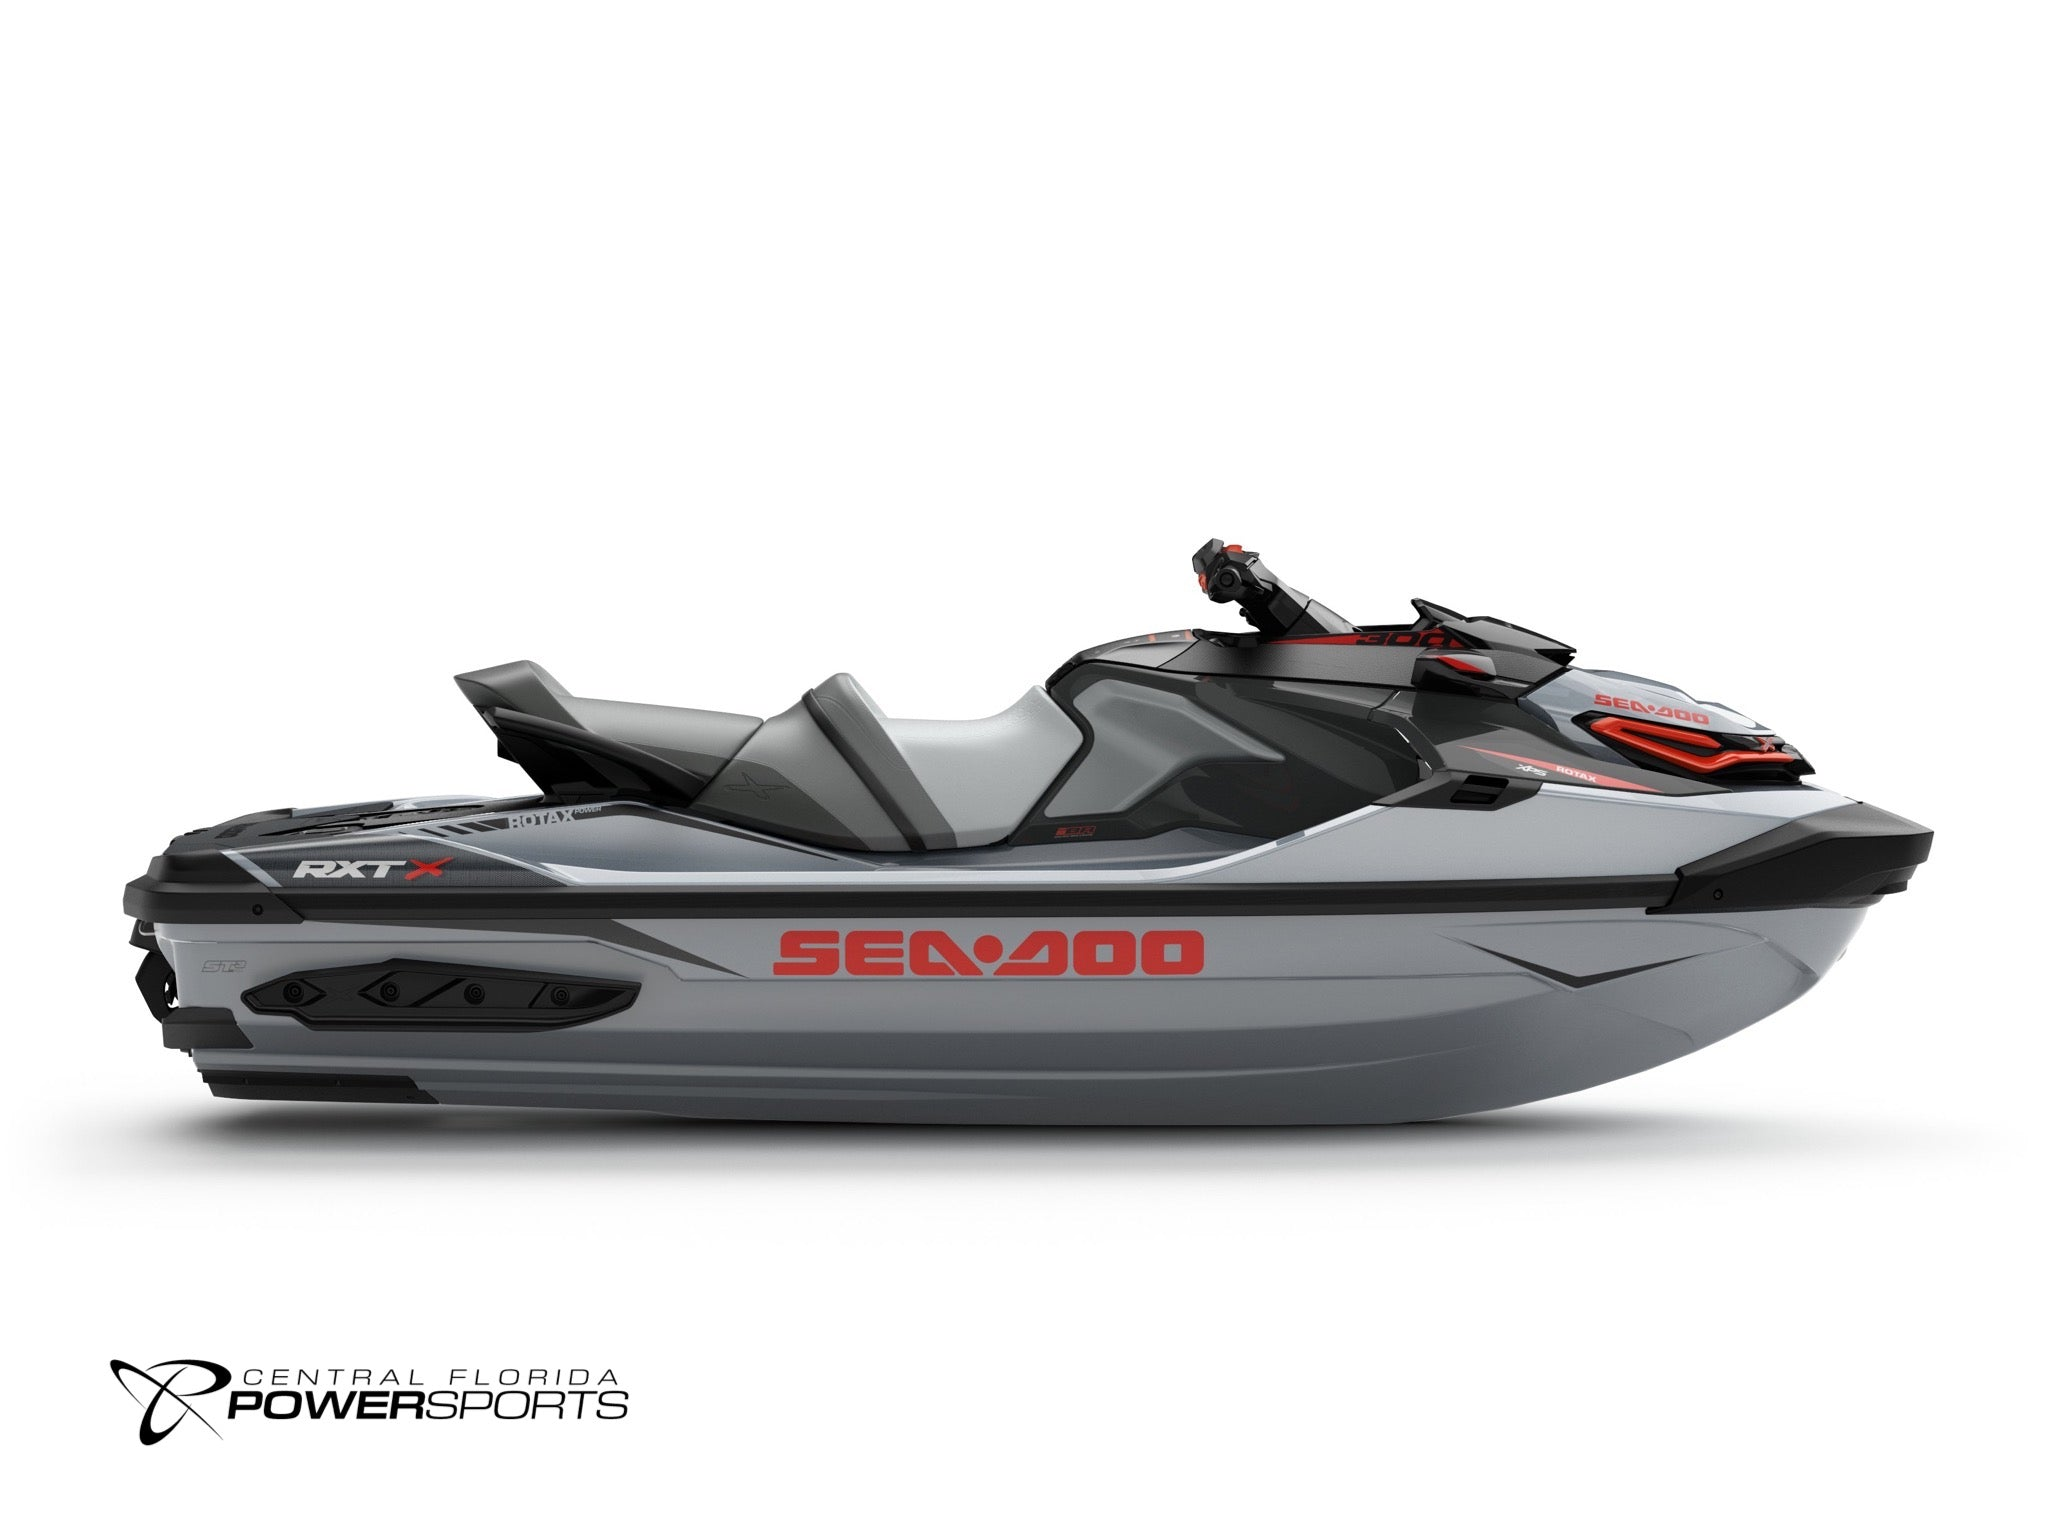 Seadoo Prices >> Lowest Prices on 2018 Sea-Doo RXT-X 300 Racing PWC For Sale Kissimmee - Central Florida PowerSports